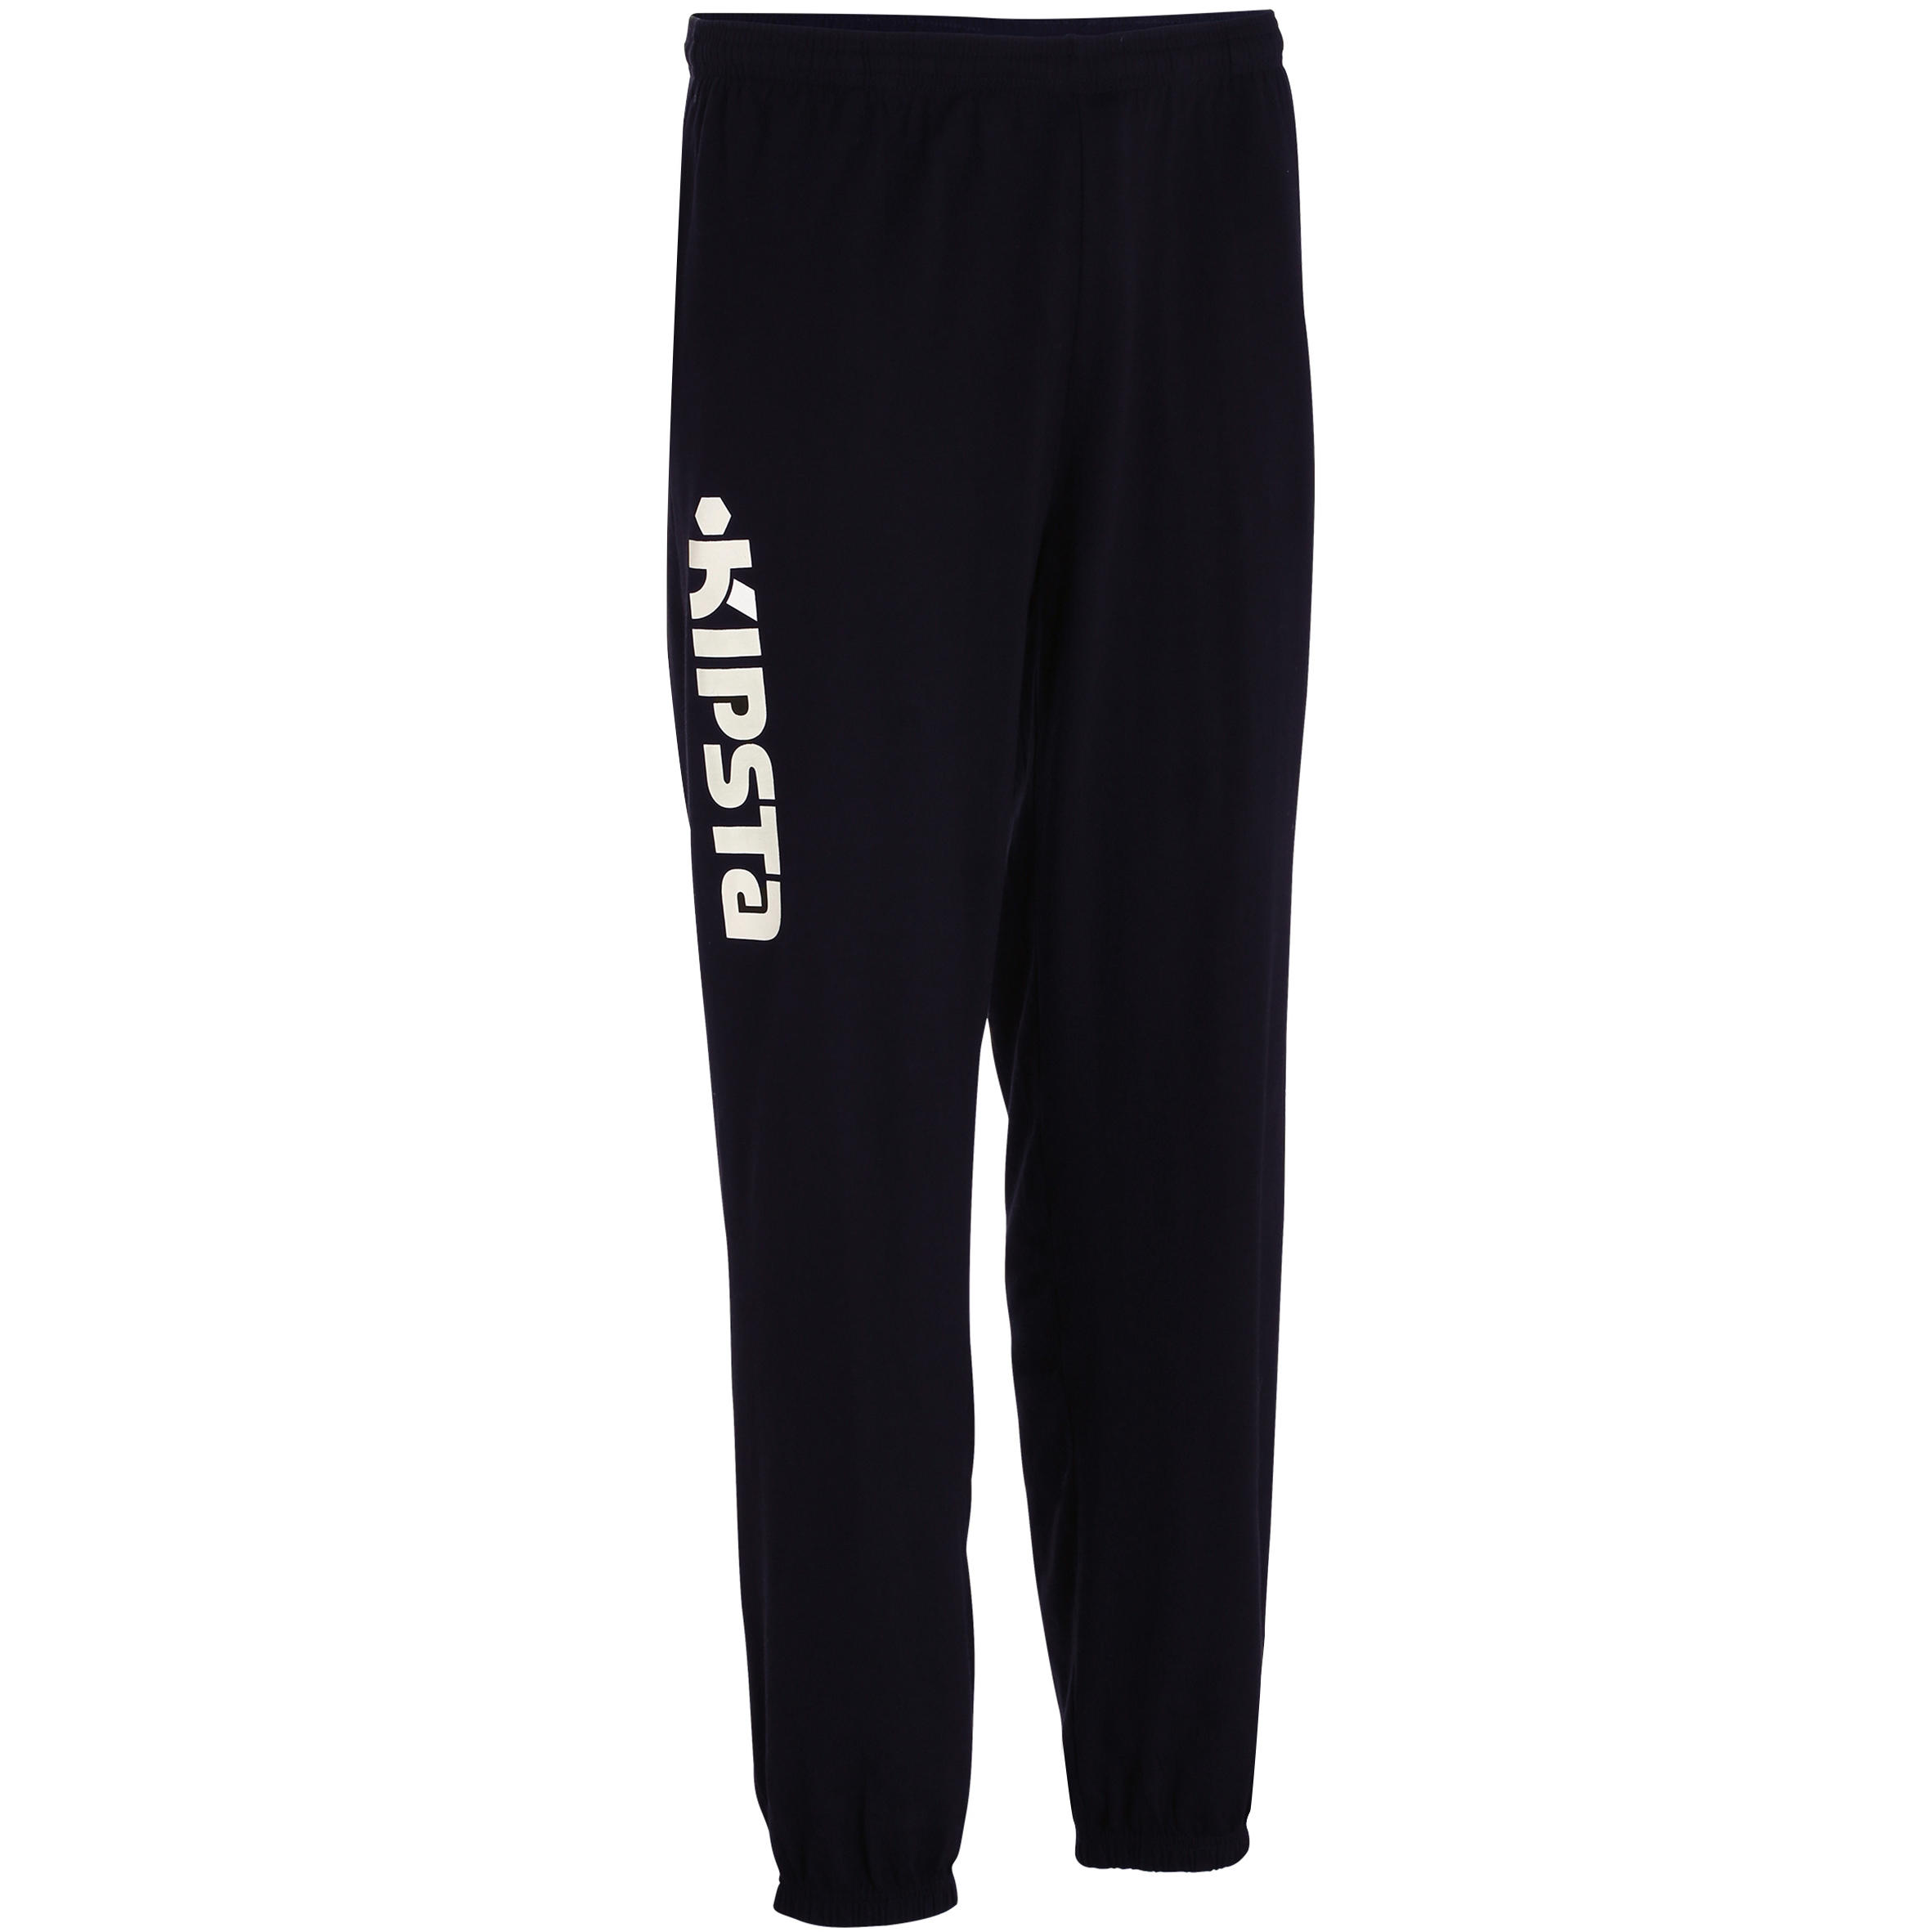 Pantalon volleyball V 100 adulte noir blanc